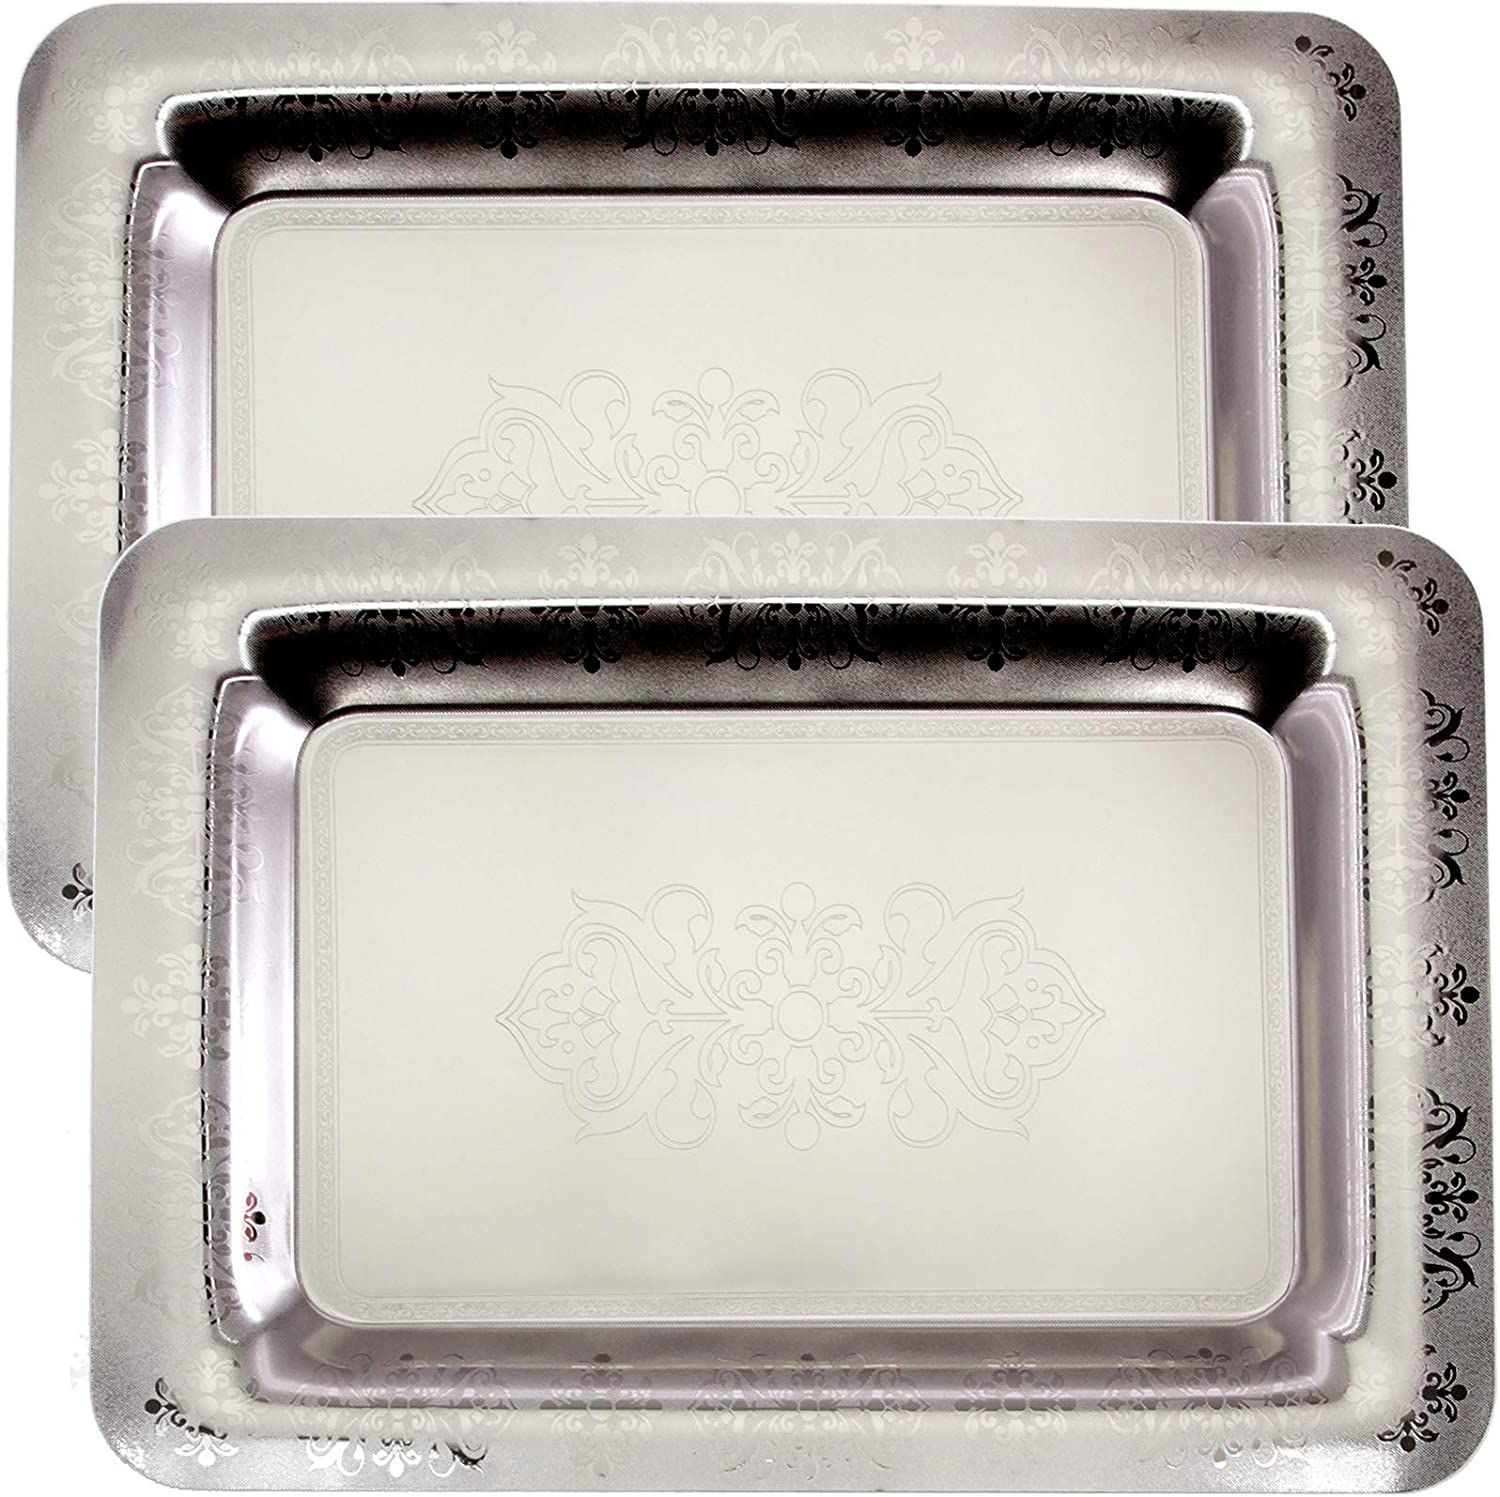 Maro Megastore (Pack of 2) 18.6 inch x 13 inch Oblong Chrome Plated Mirror Silver Serving Tray Stylish Design Floral Engraved Edge Decorative Party Birthday Wedding Buffet Wine Platter Plate TLA-341